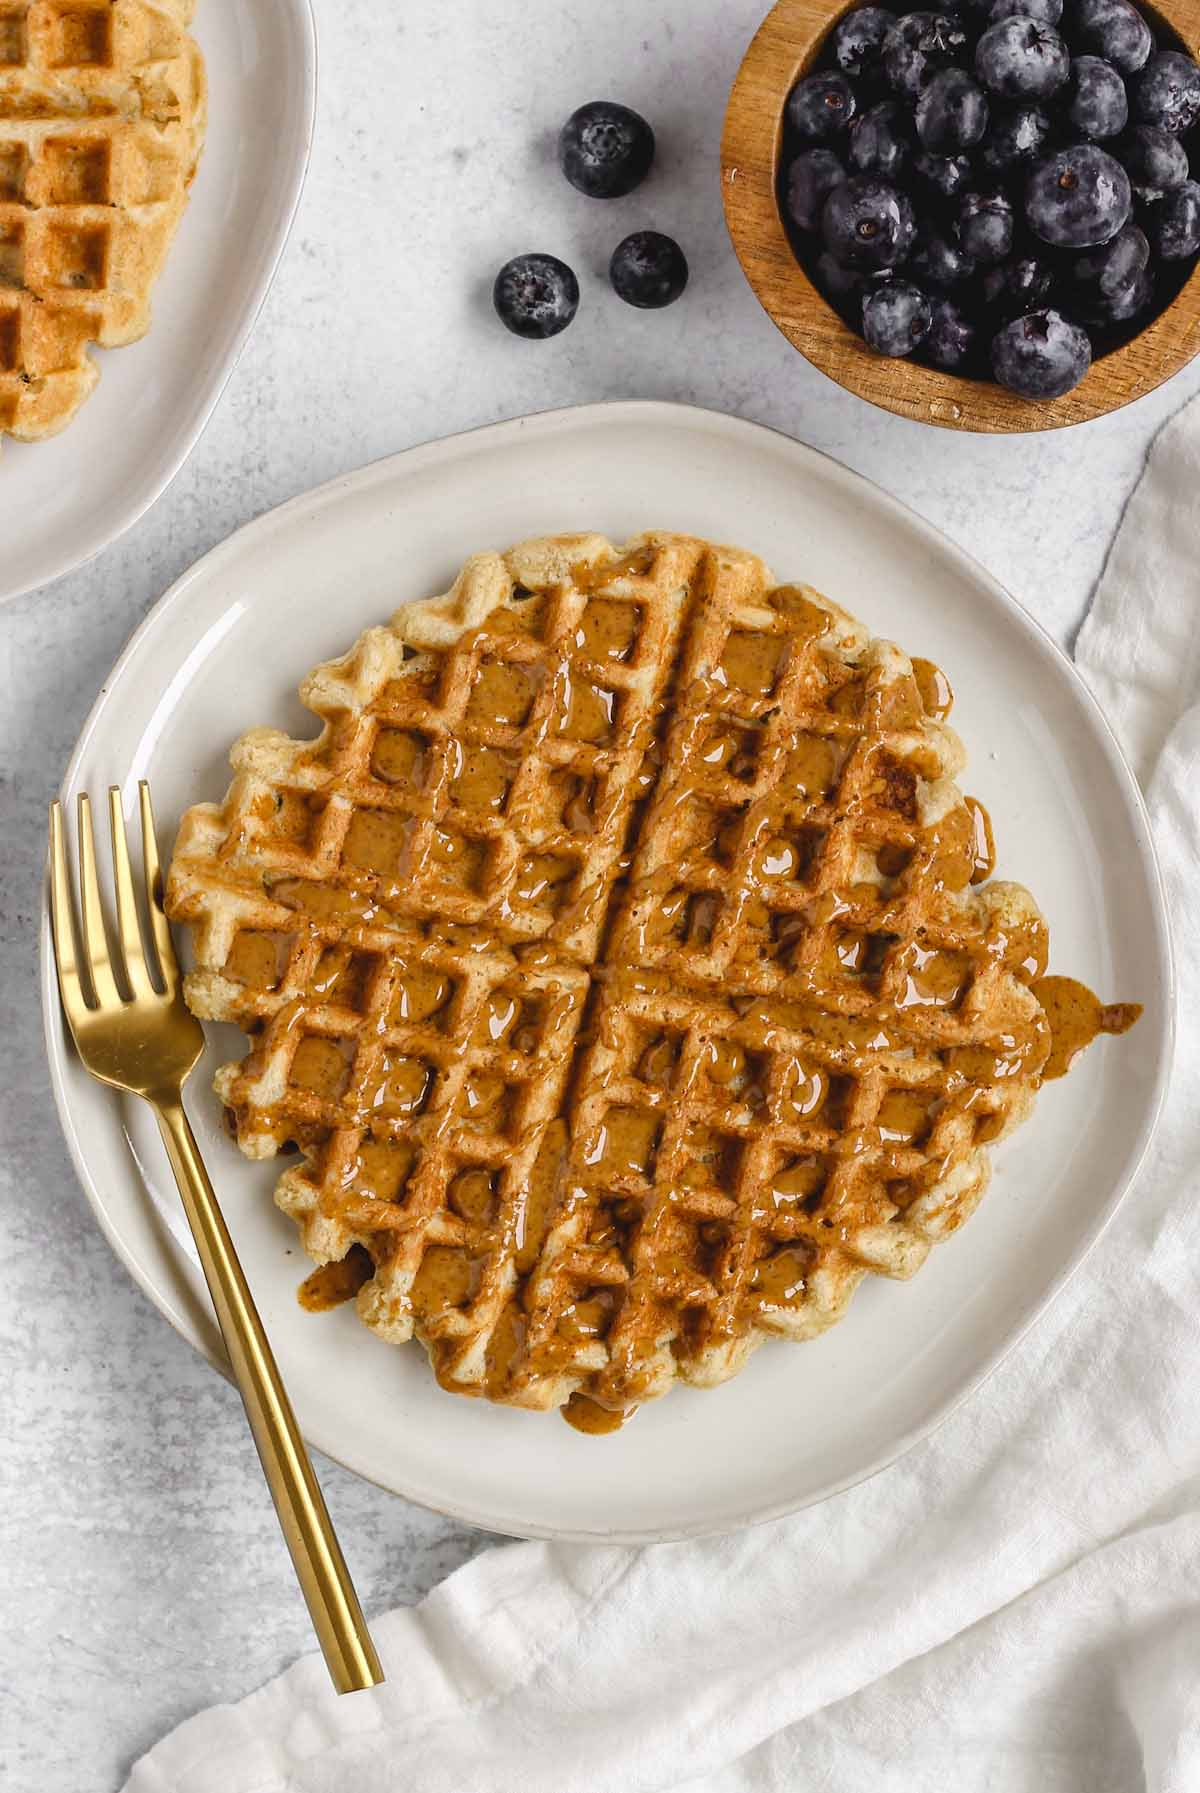 waffle on a white plate drizzled with almond butter with some blueberries in the background